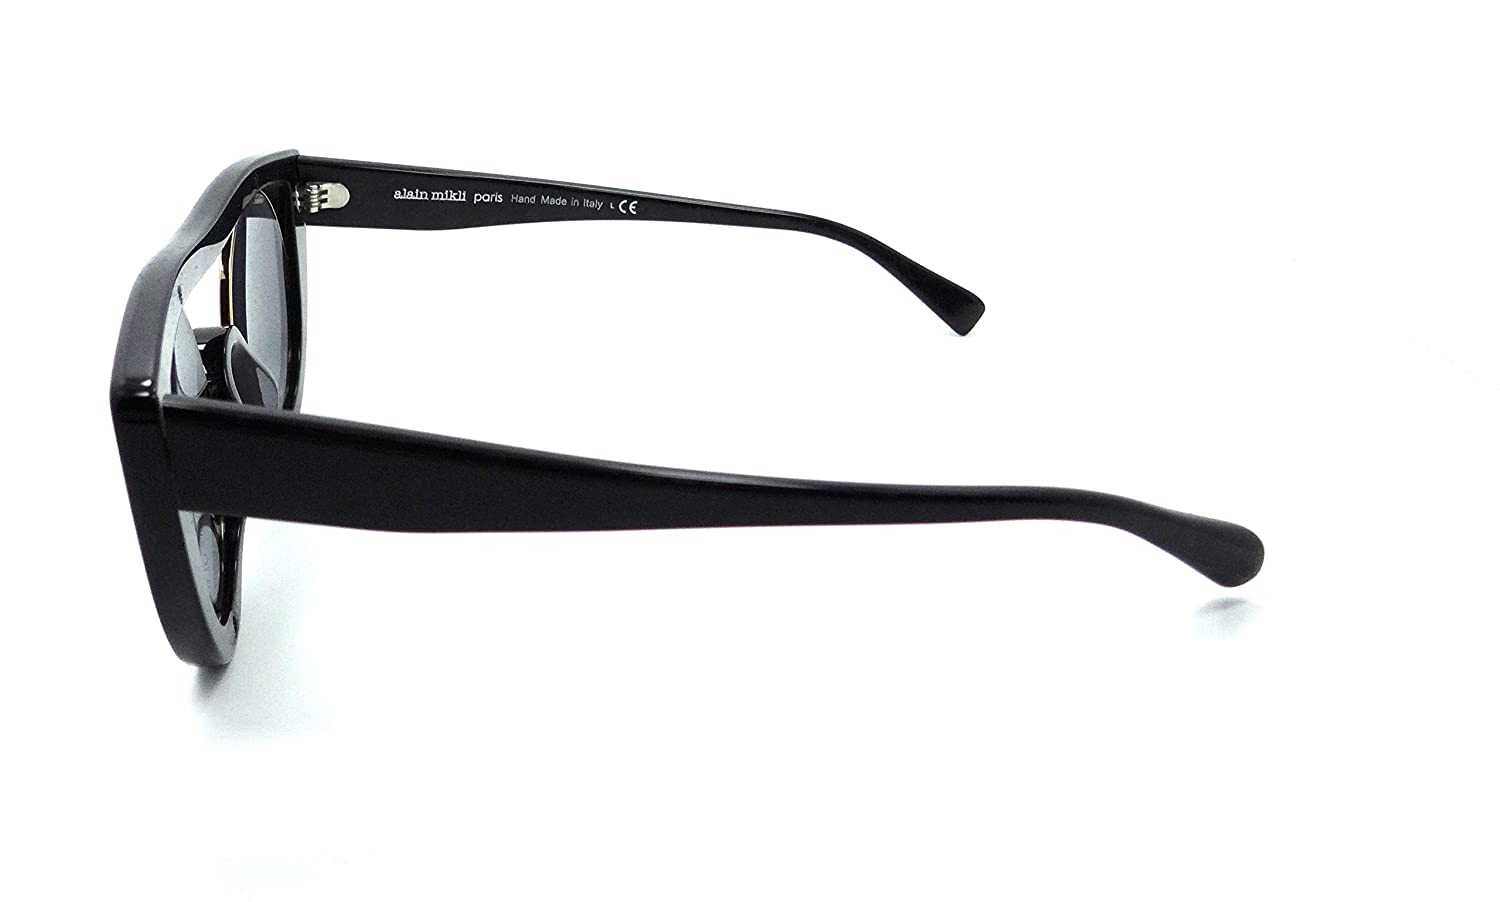 Alain Mikli Sunglasses A05034 001//6G 45-25-145 Ayer Black Marble//Grey Mirror